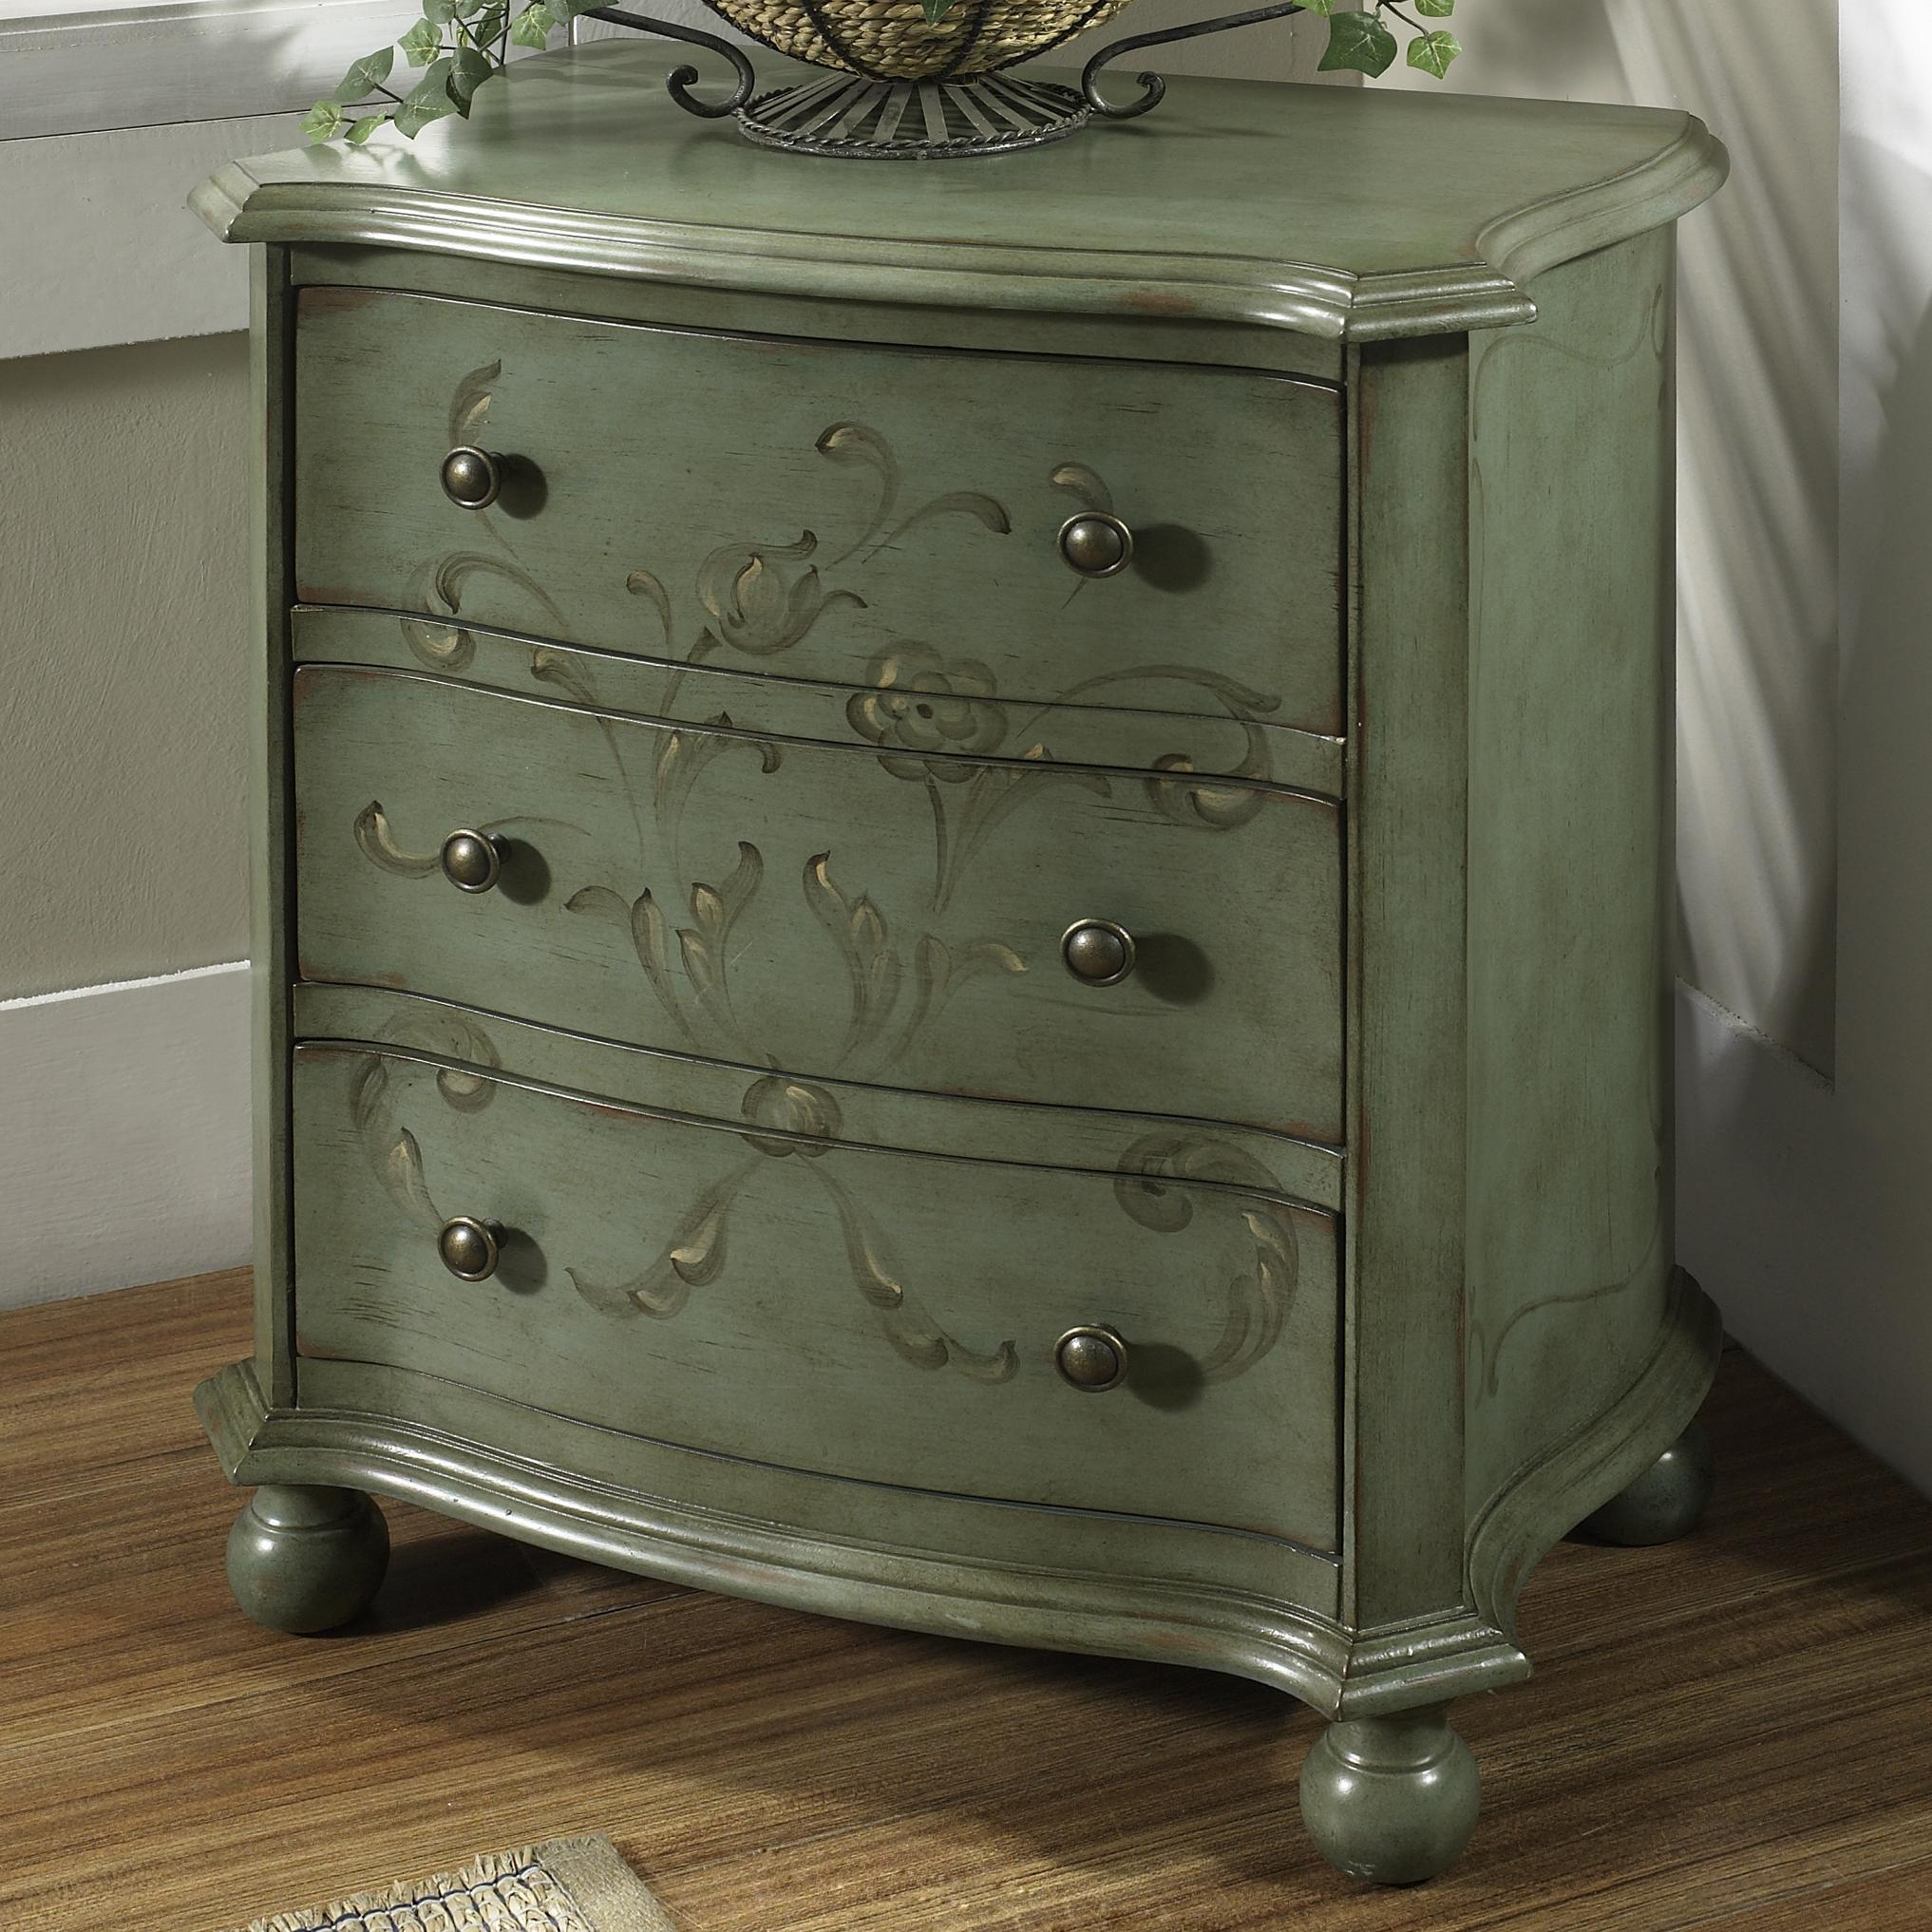 Pulaski Furniture Accents Accent Chest With Drawers Miskelly Furniture Occasional Cabinet